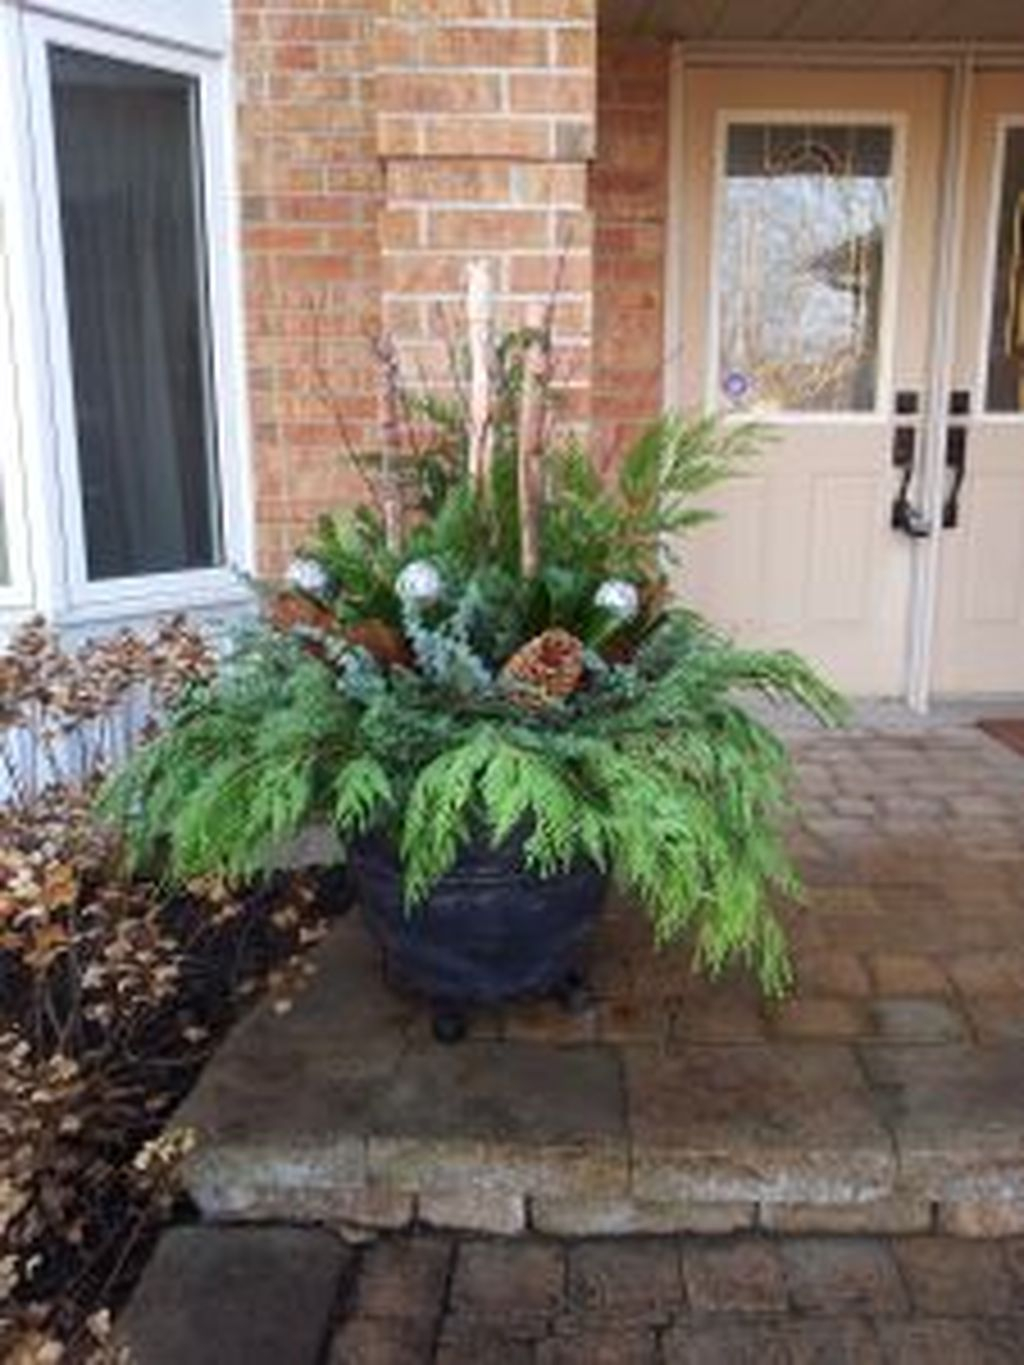 Marvelous Outdoor Holiday Planter Ideas To Beauty Porch Décor 38